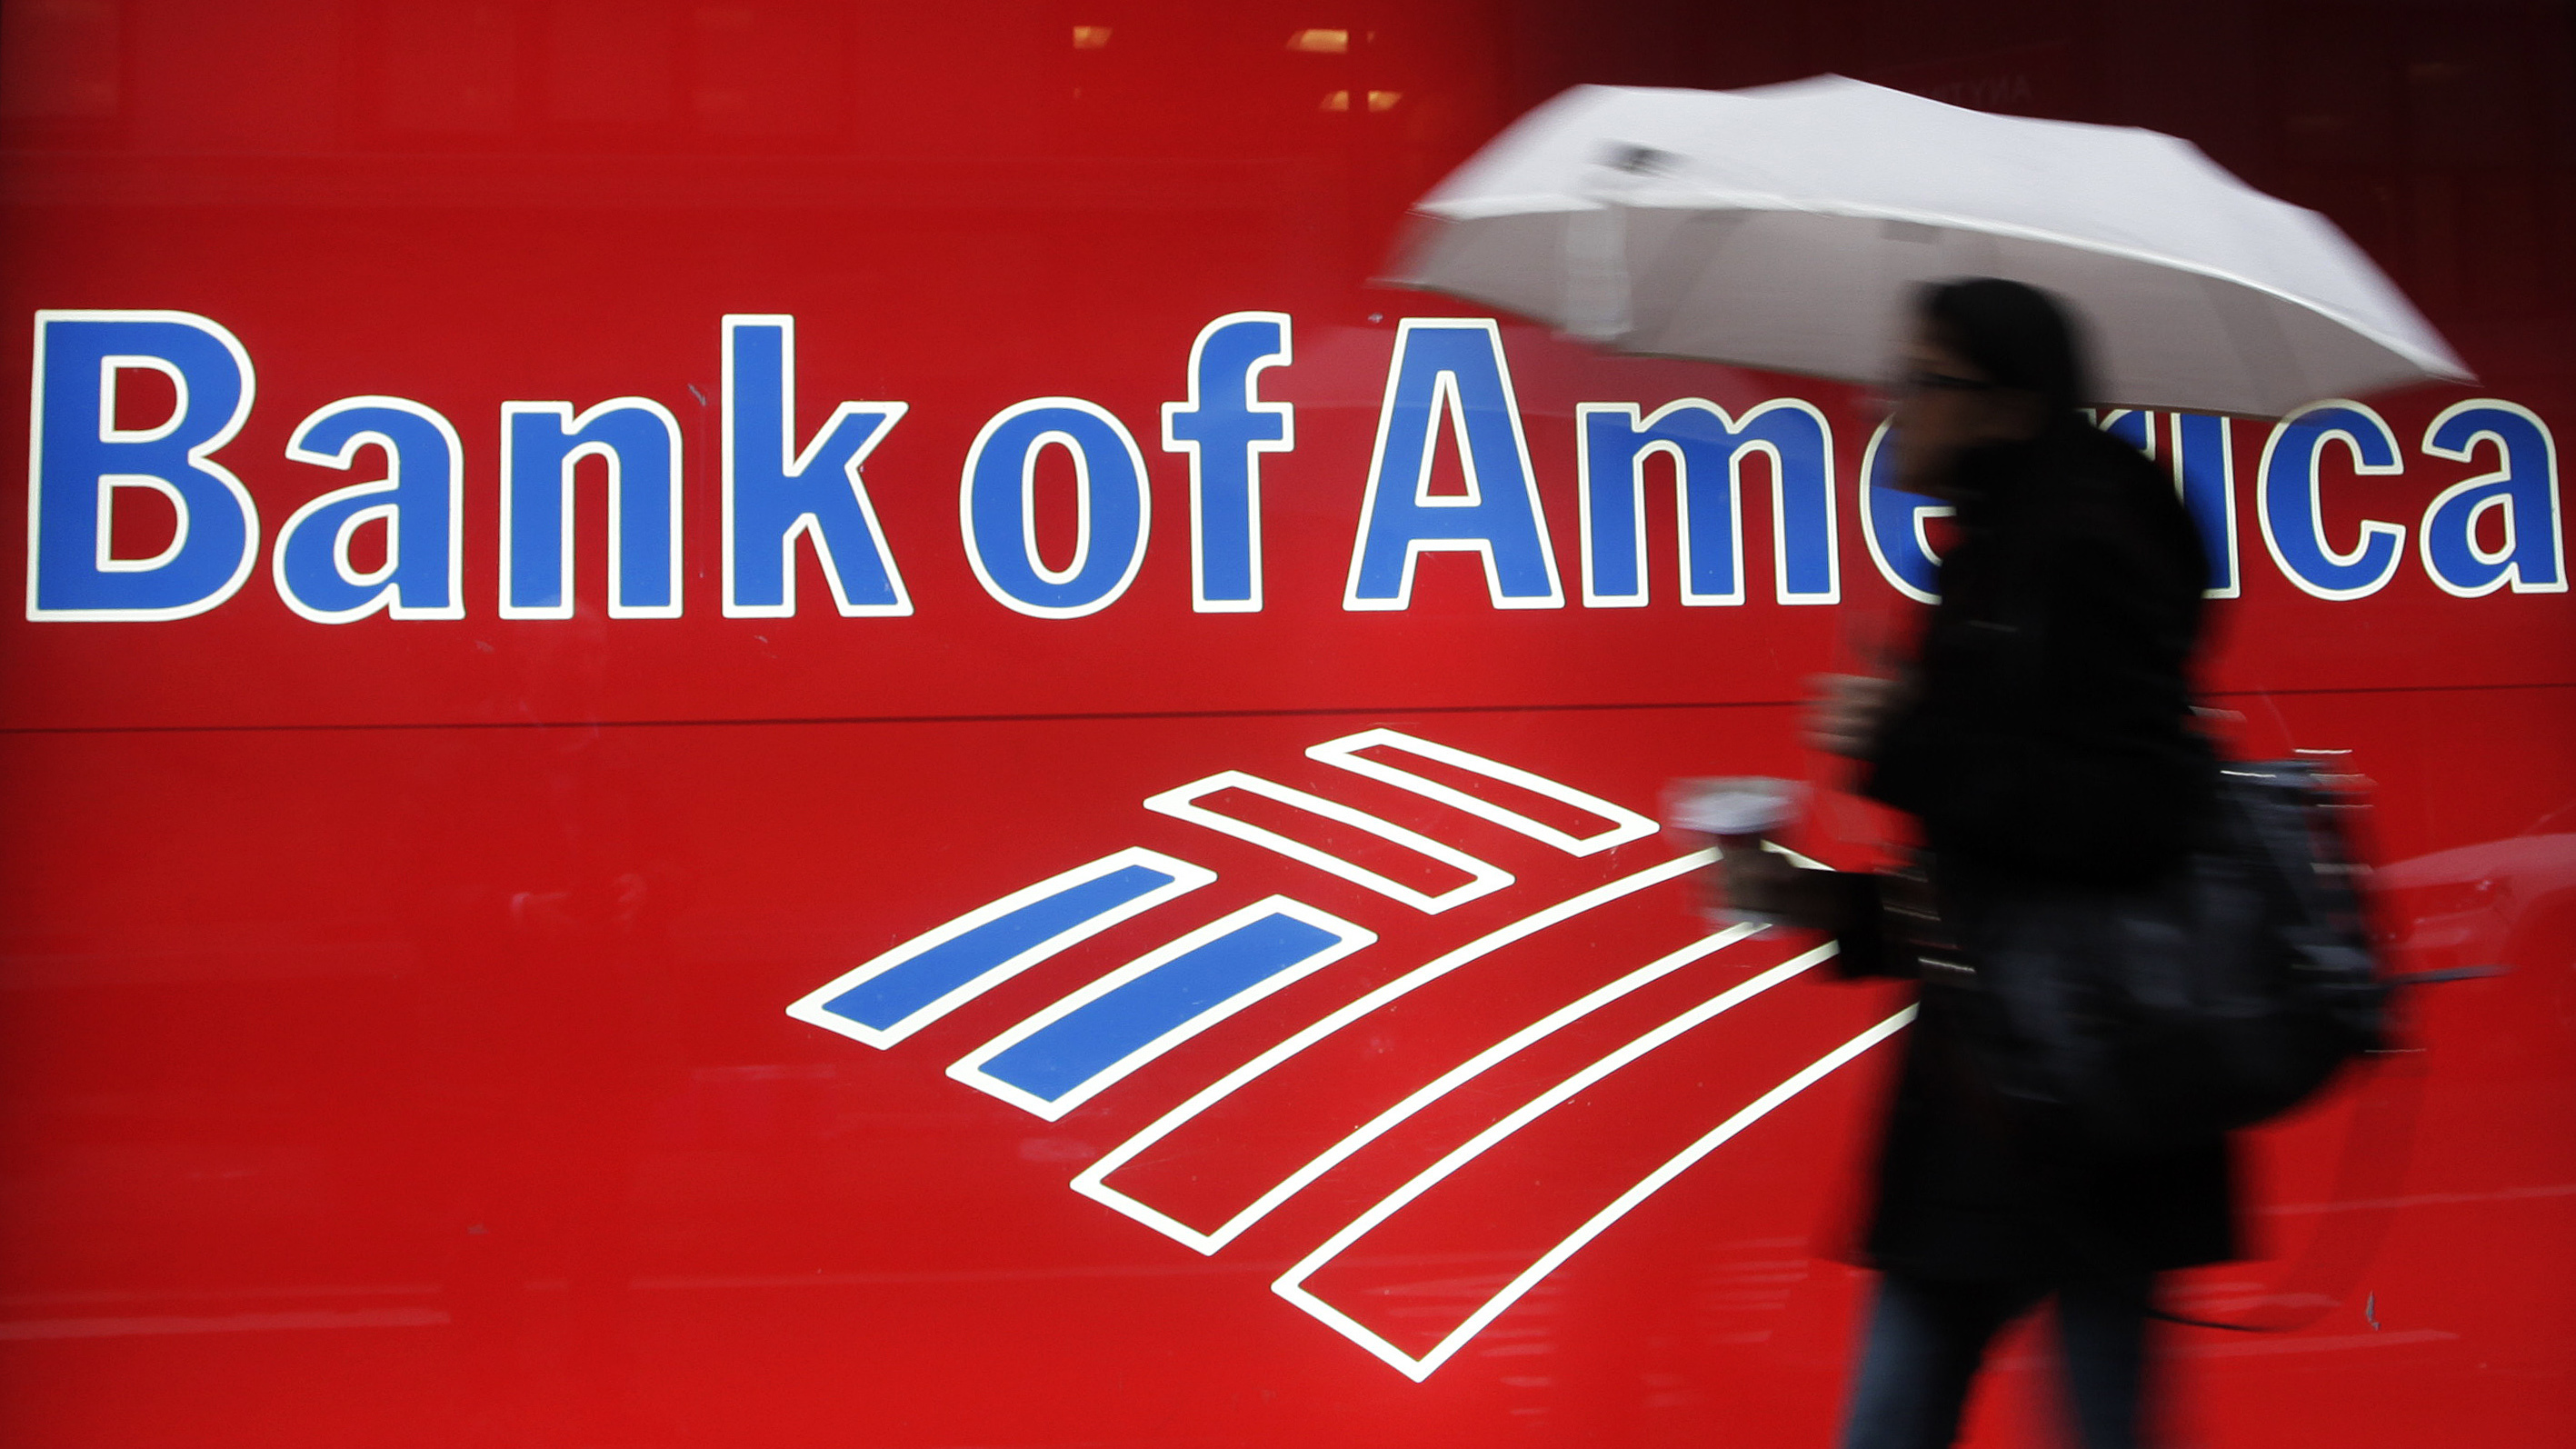 Consumers Can Find Low-Cost Checking, Despite Bank of America Move